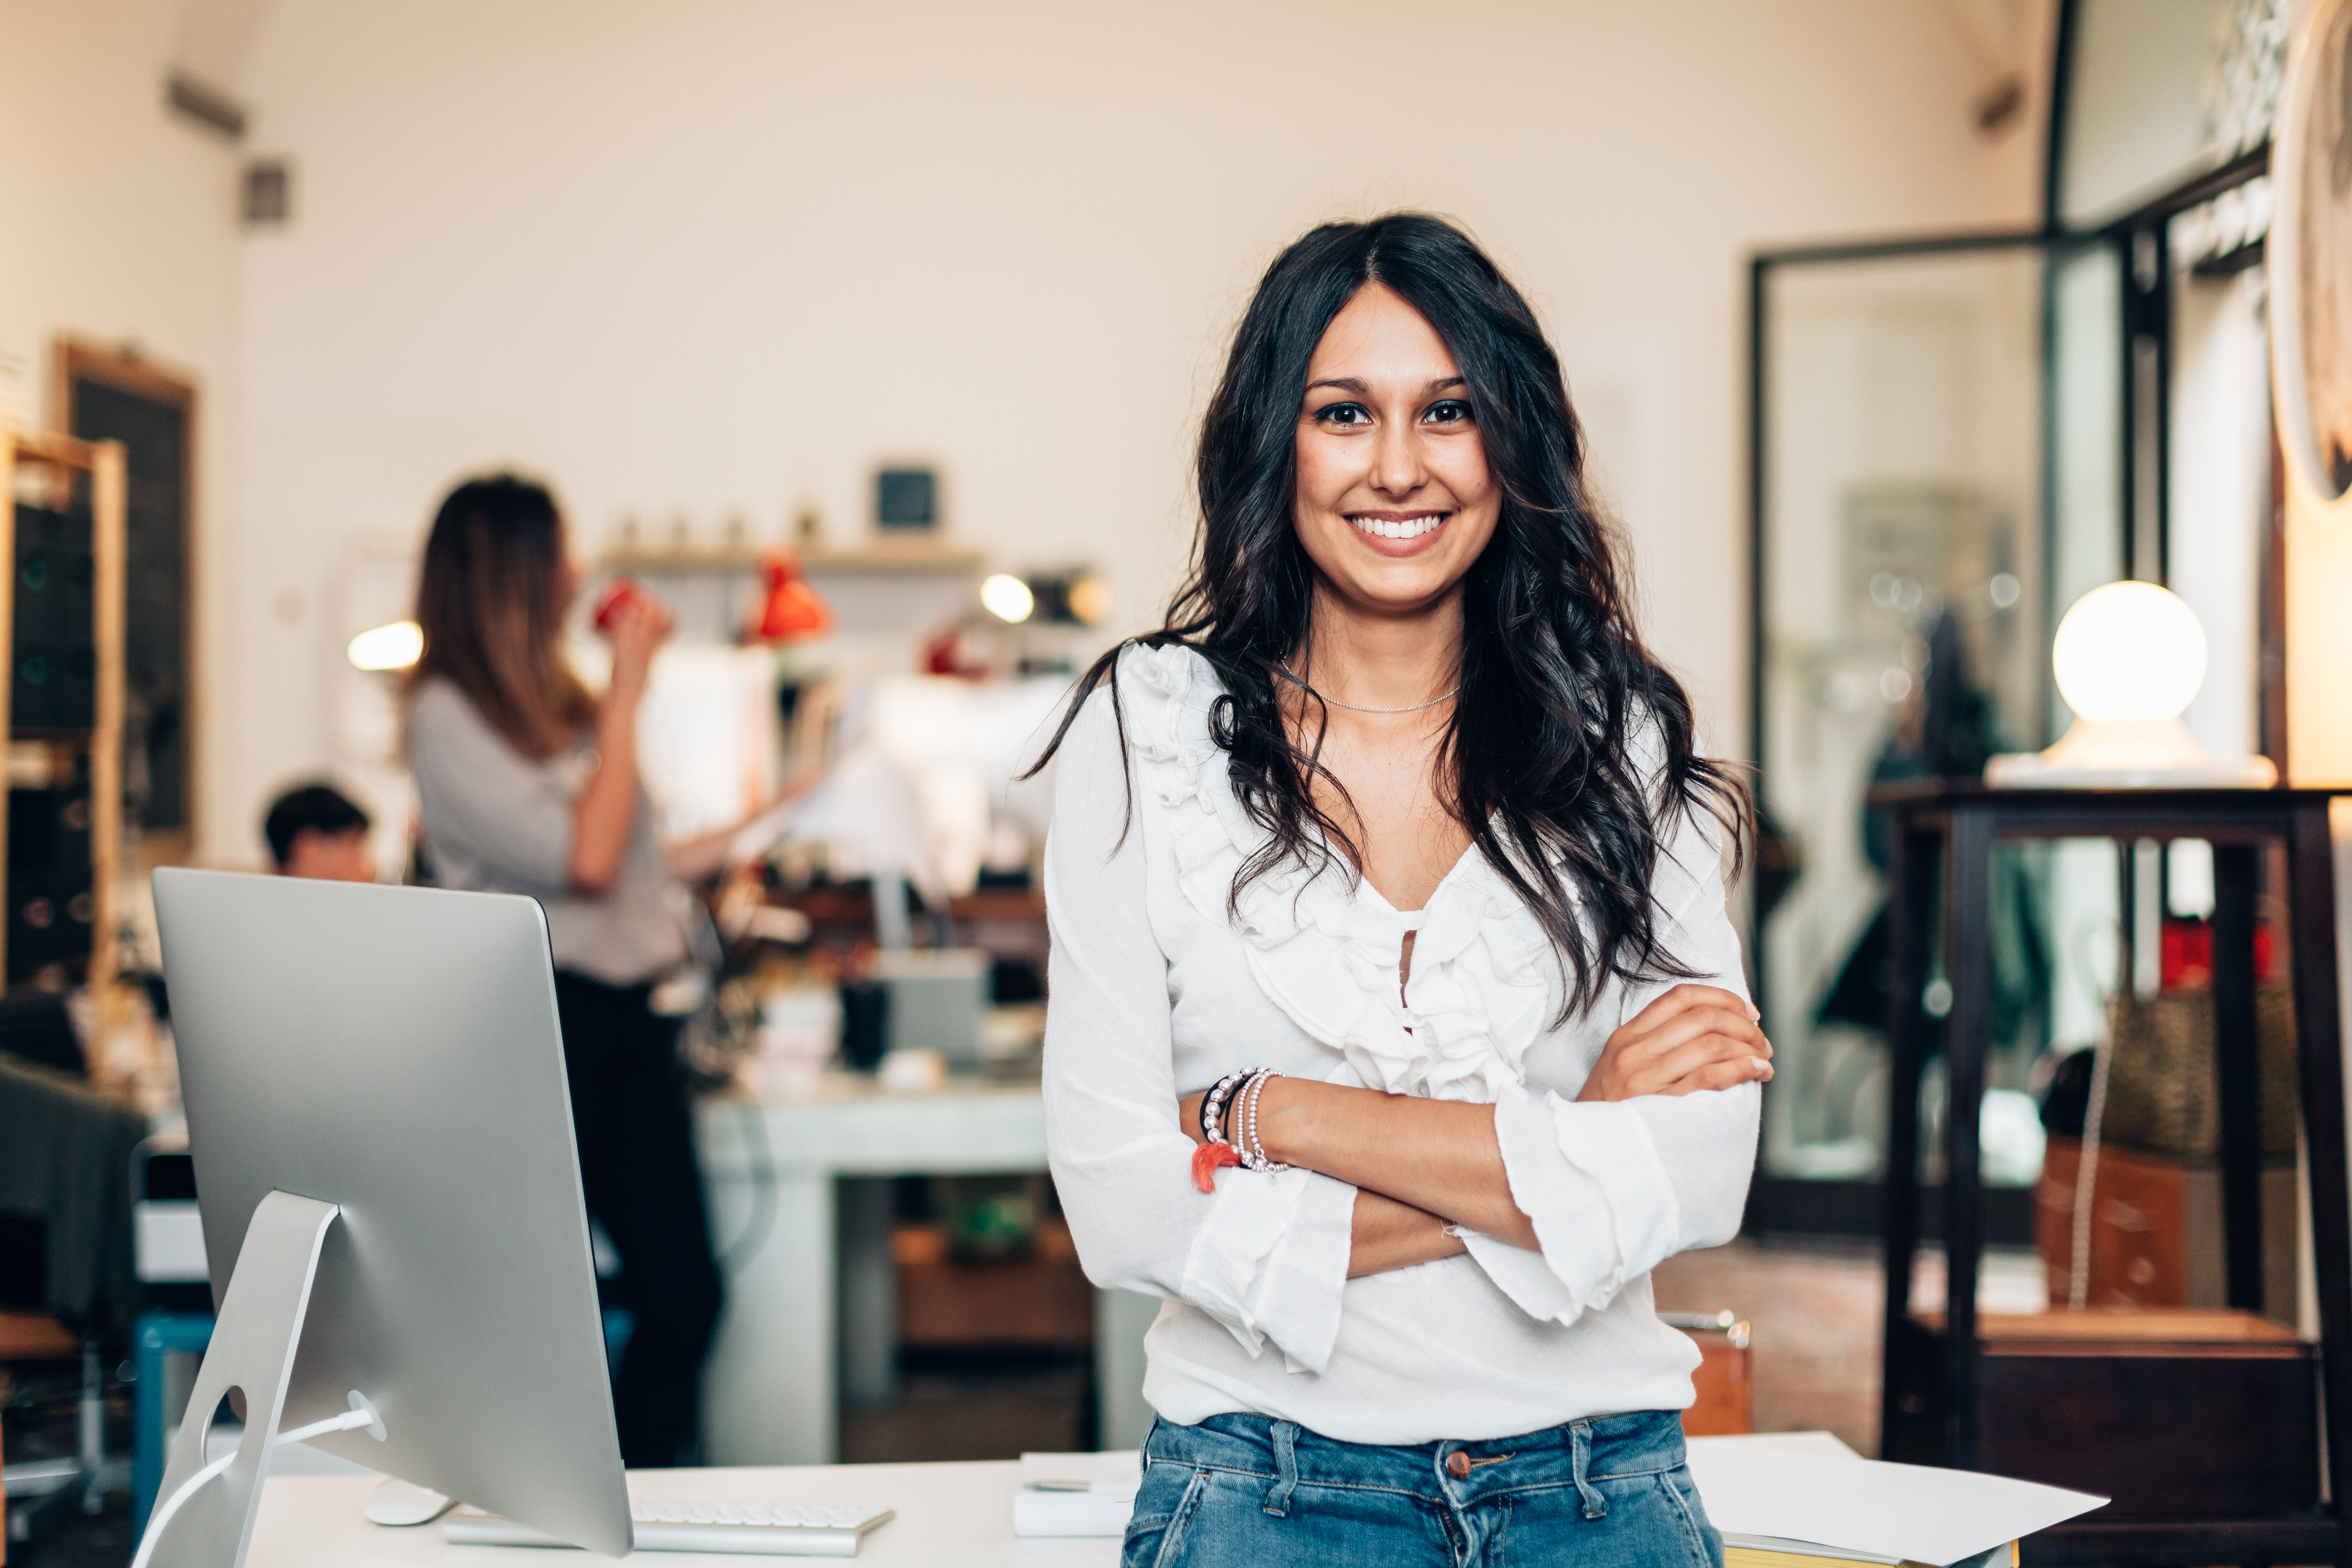 Young female business owner